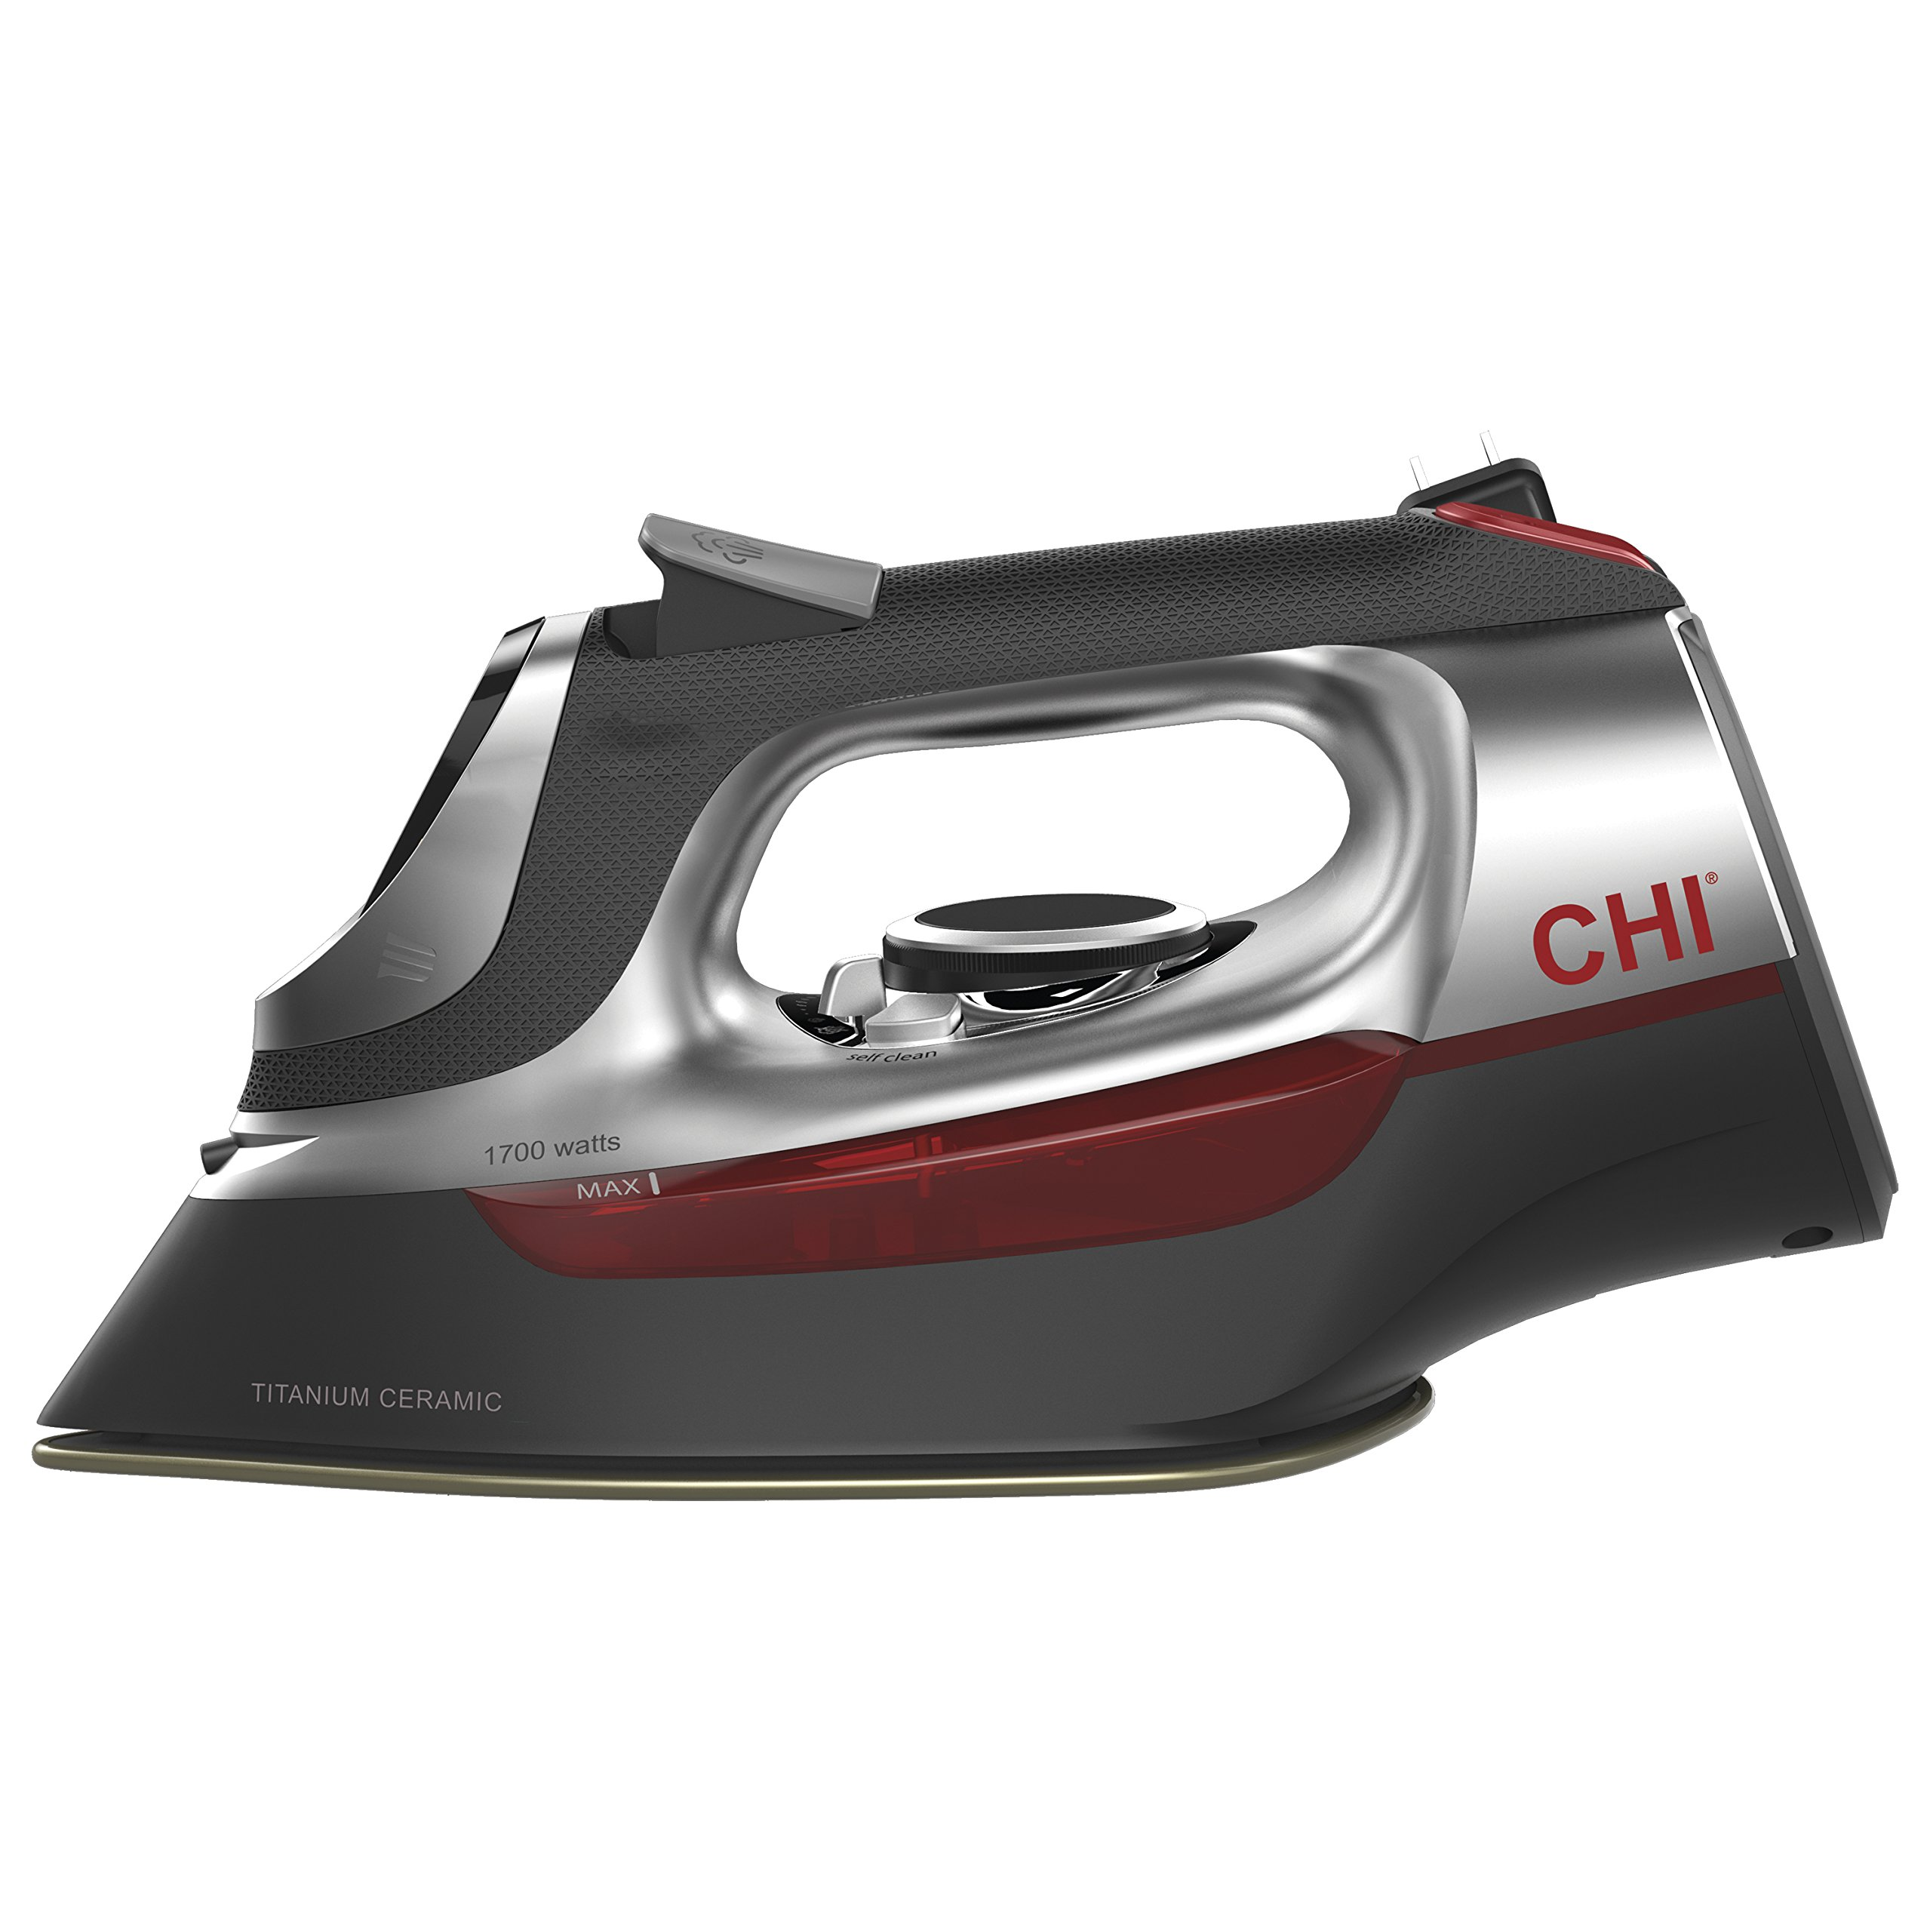 CHI Professional Steam Iron with Electronic temperature controls, 1700 Watts, Titanium-Infused Ceramic Soleplate & Over 400 Steam-Holes, Retractable Cord (13102) by CHI (CHJ1T)